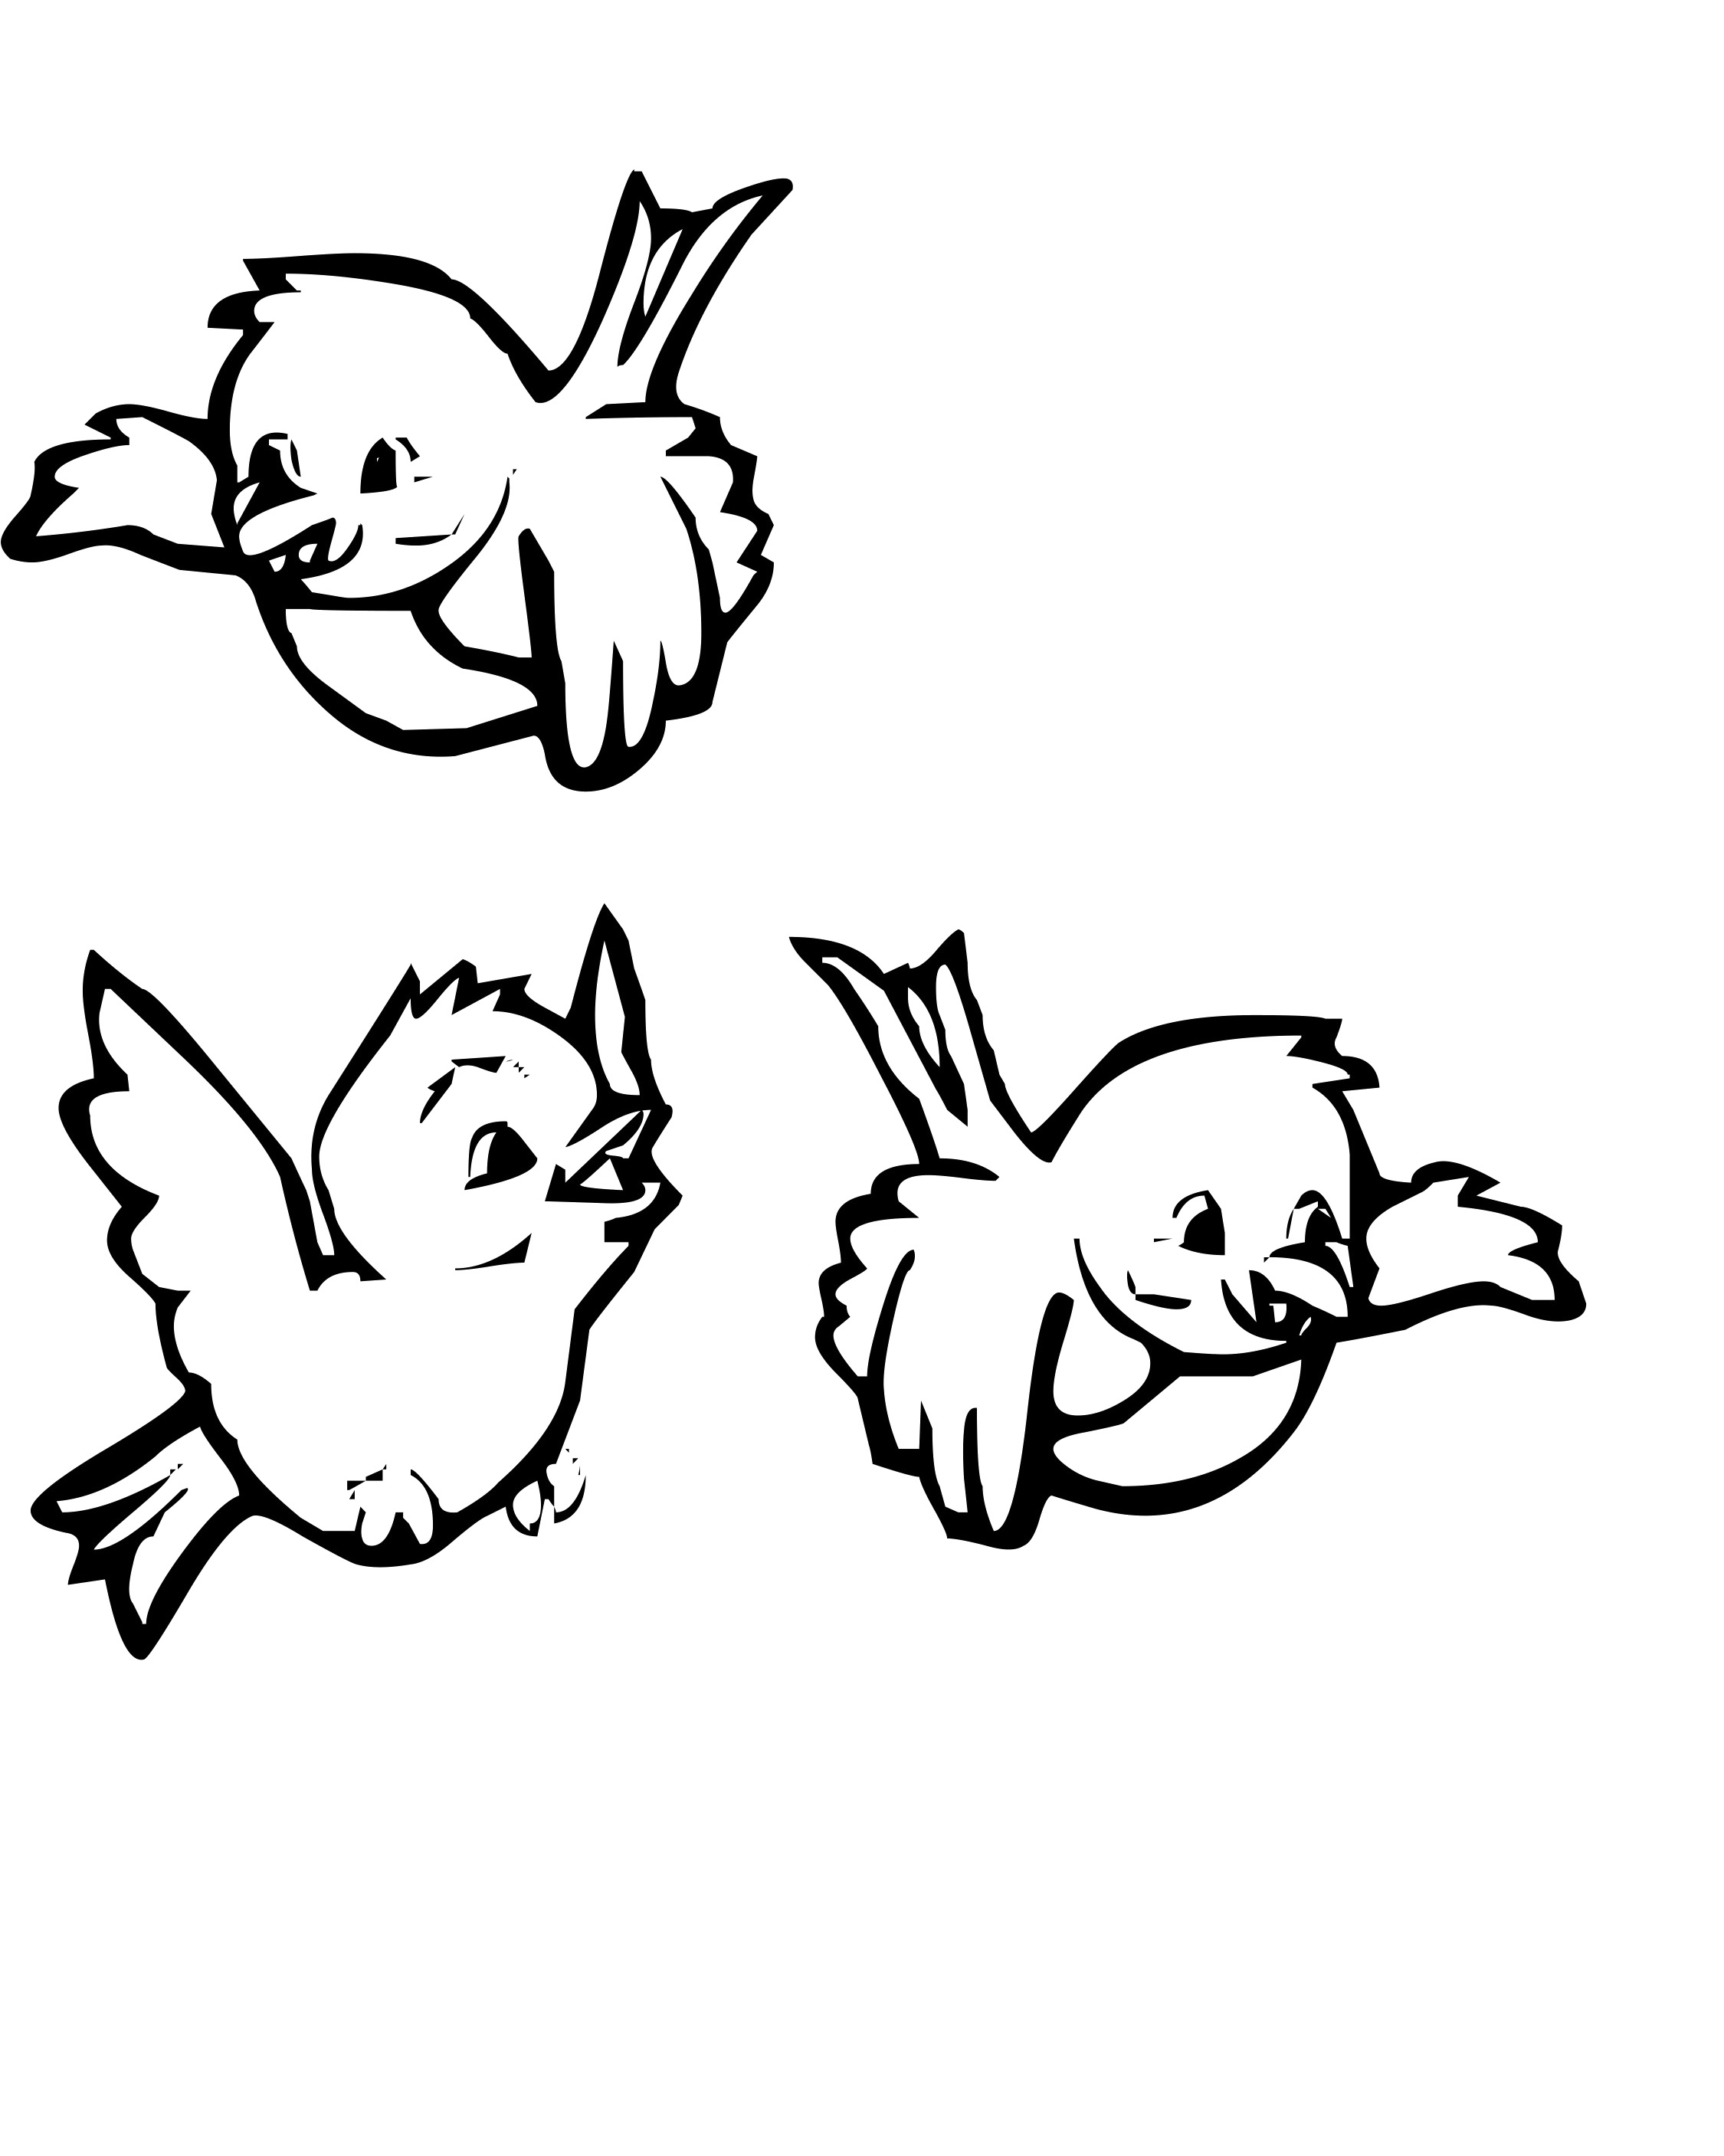 Drawn brds baby bird Cute Page atrinrayaneh Bird Page